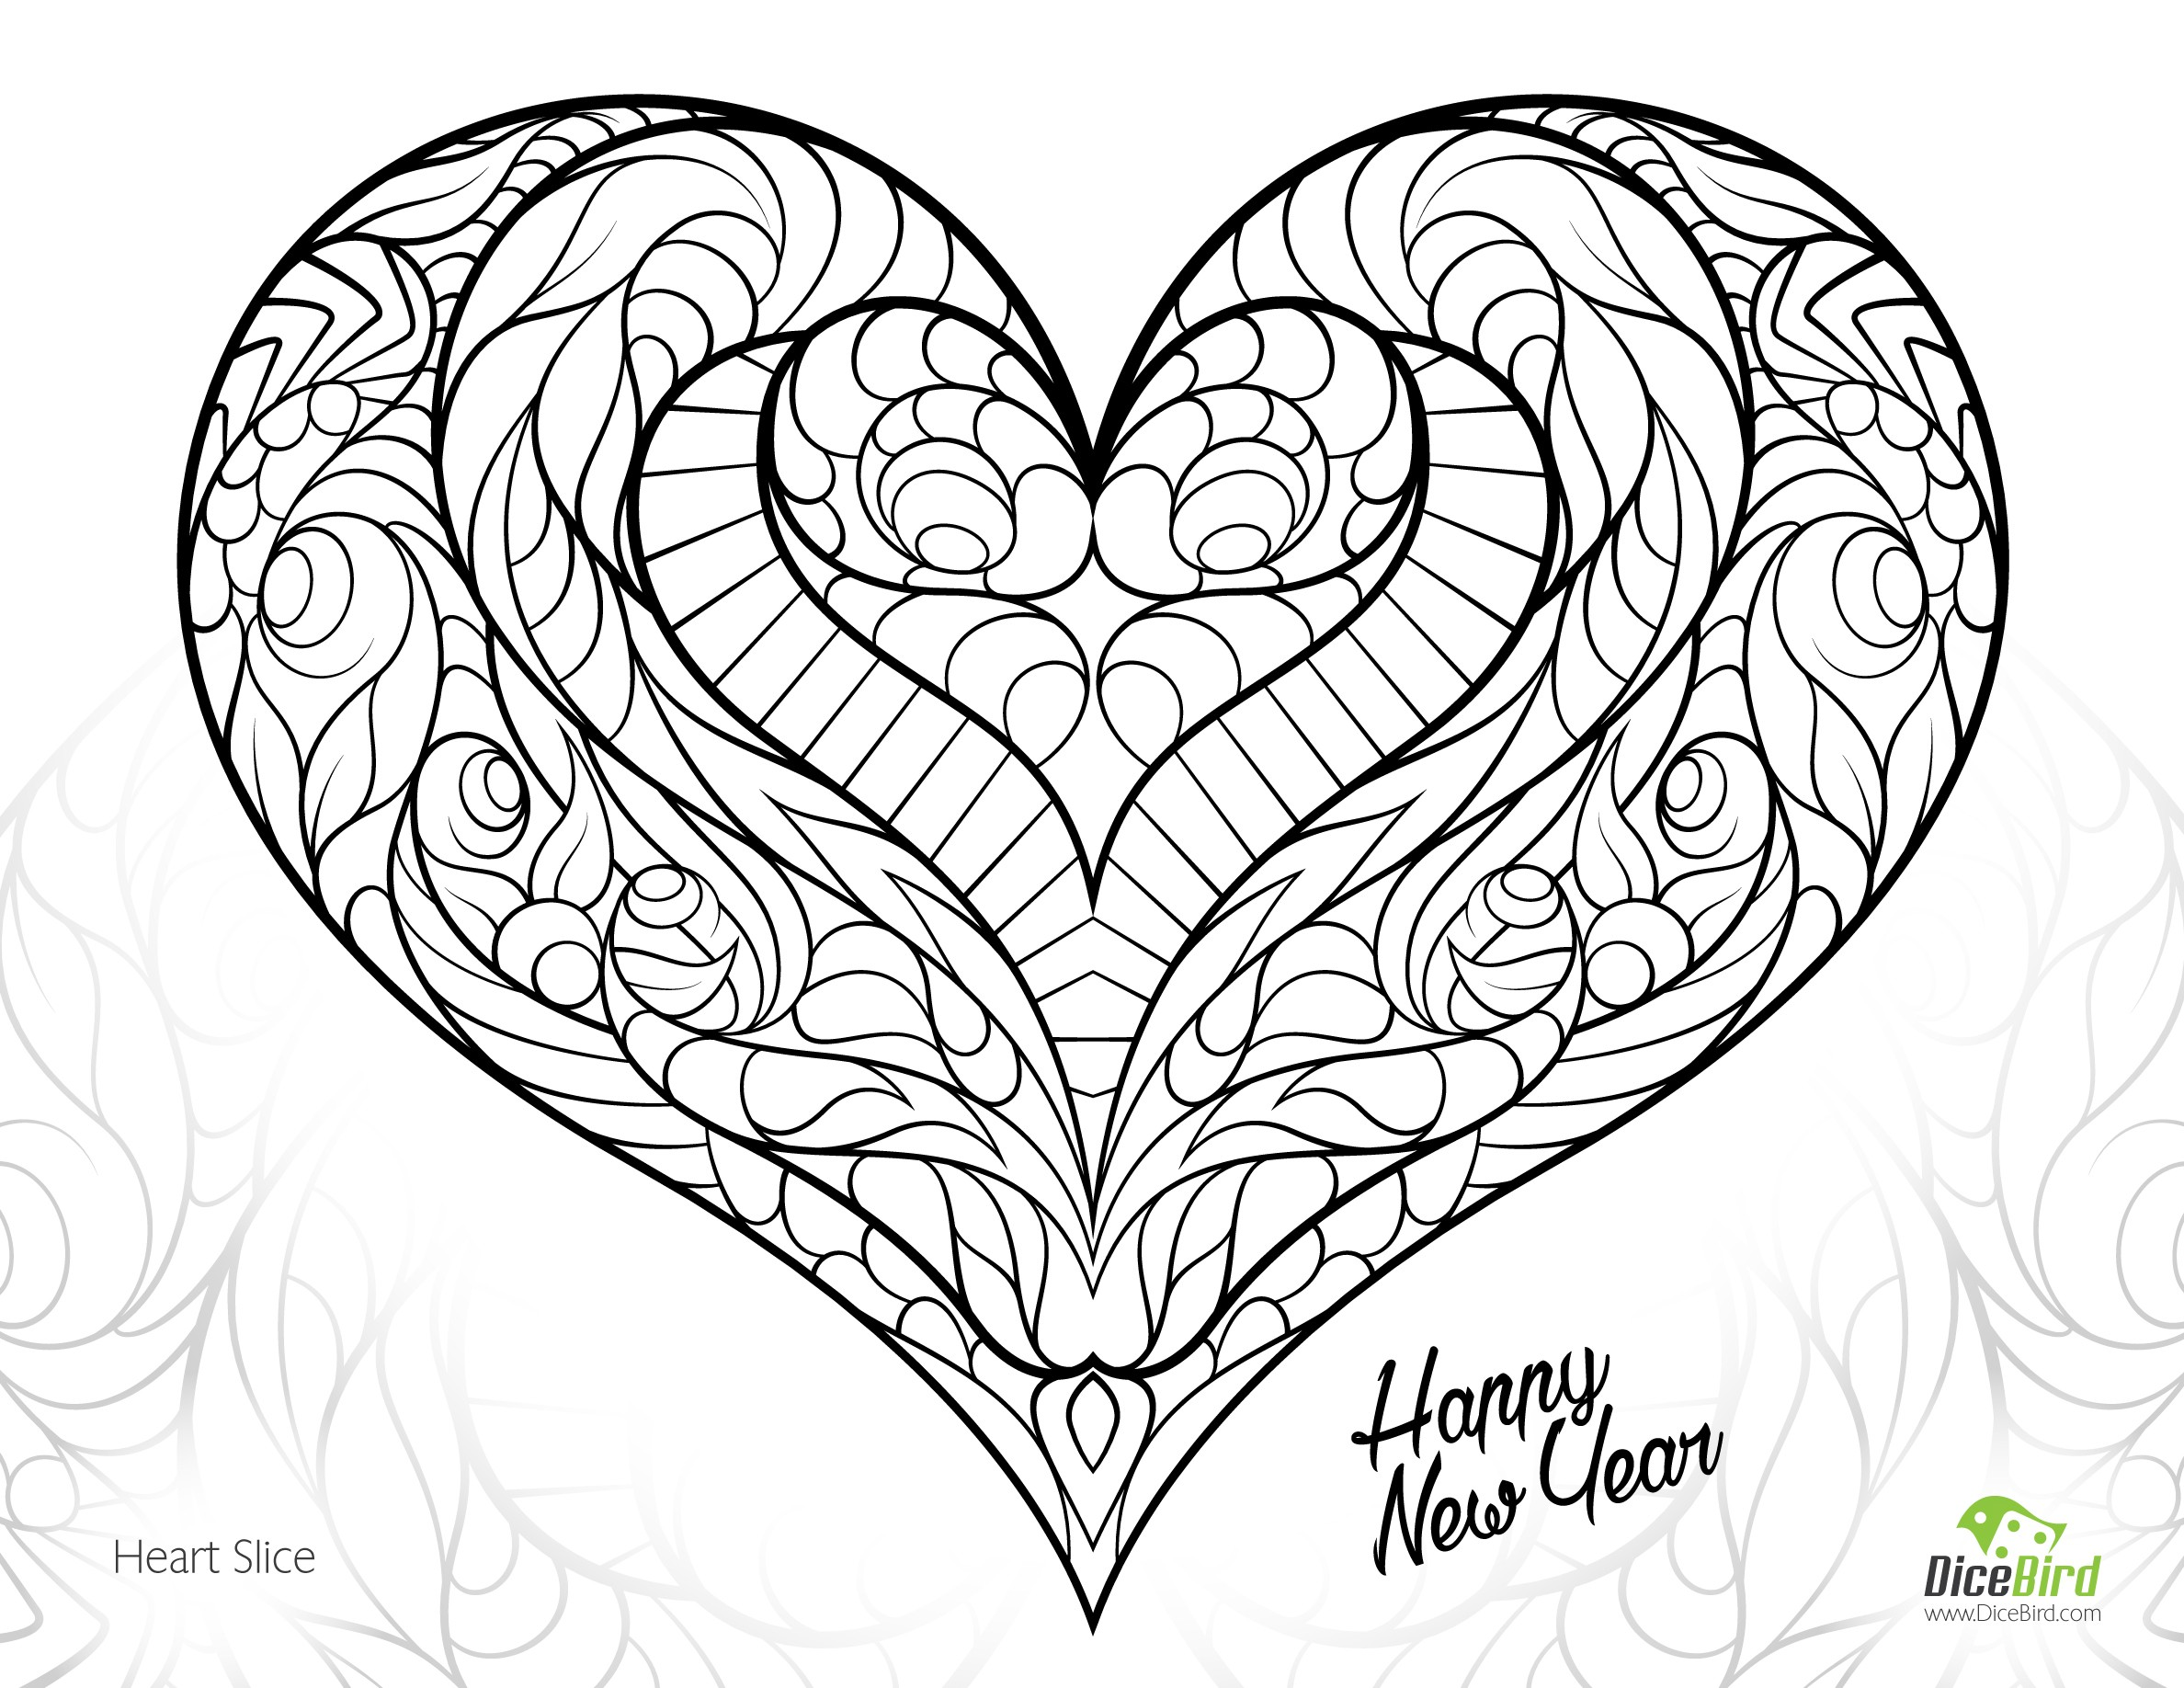 beautiful flower heart coloring pages hearts and roses in the vase coloring page color luna coloring heart flower beautiful pages